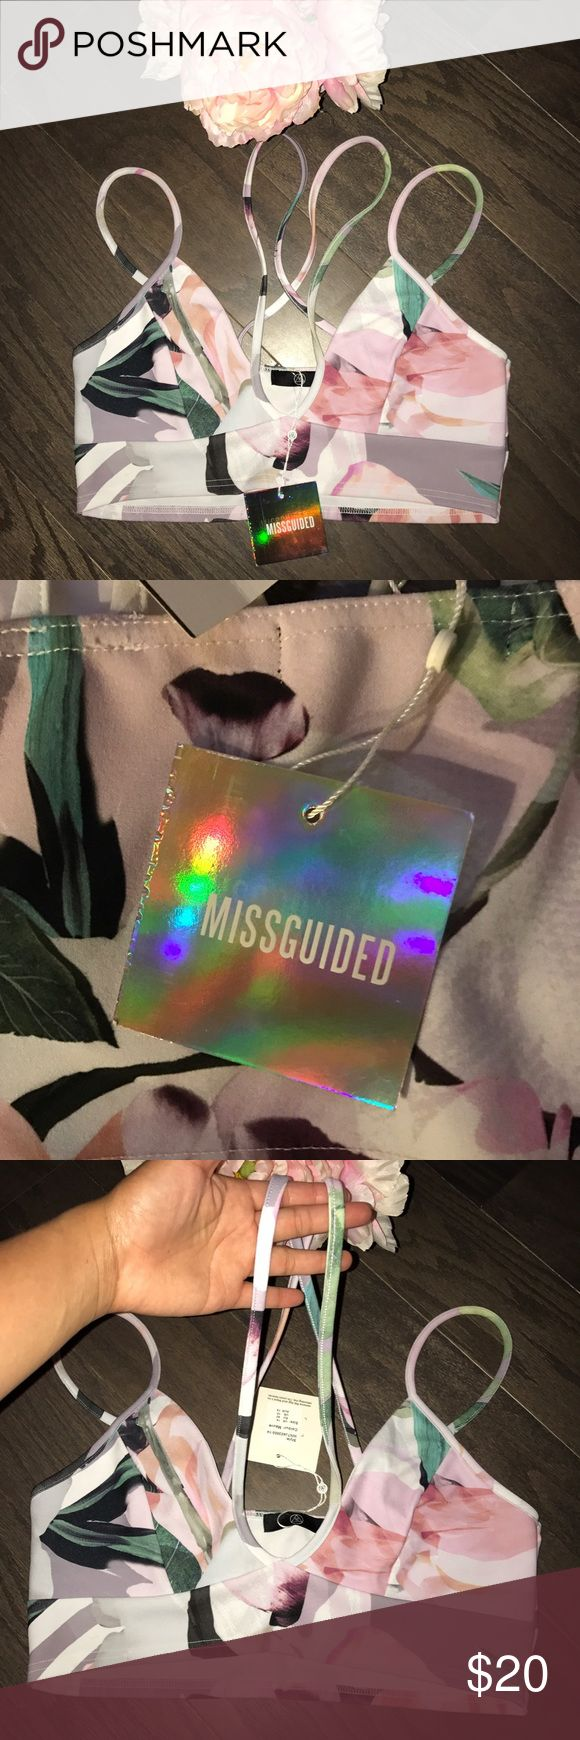 NWT Missguided mauve floral crop top bralette New with tags from Nordstrom. Sz 10 US. Sorry I can't try it on as it is too big for me! I included the last pic since it's the closest crop top style by missguided online Missguided Tops Crop Tops